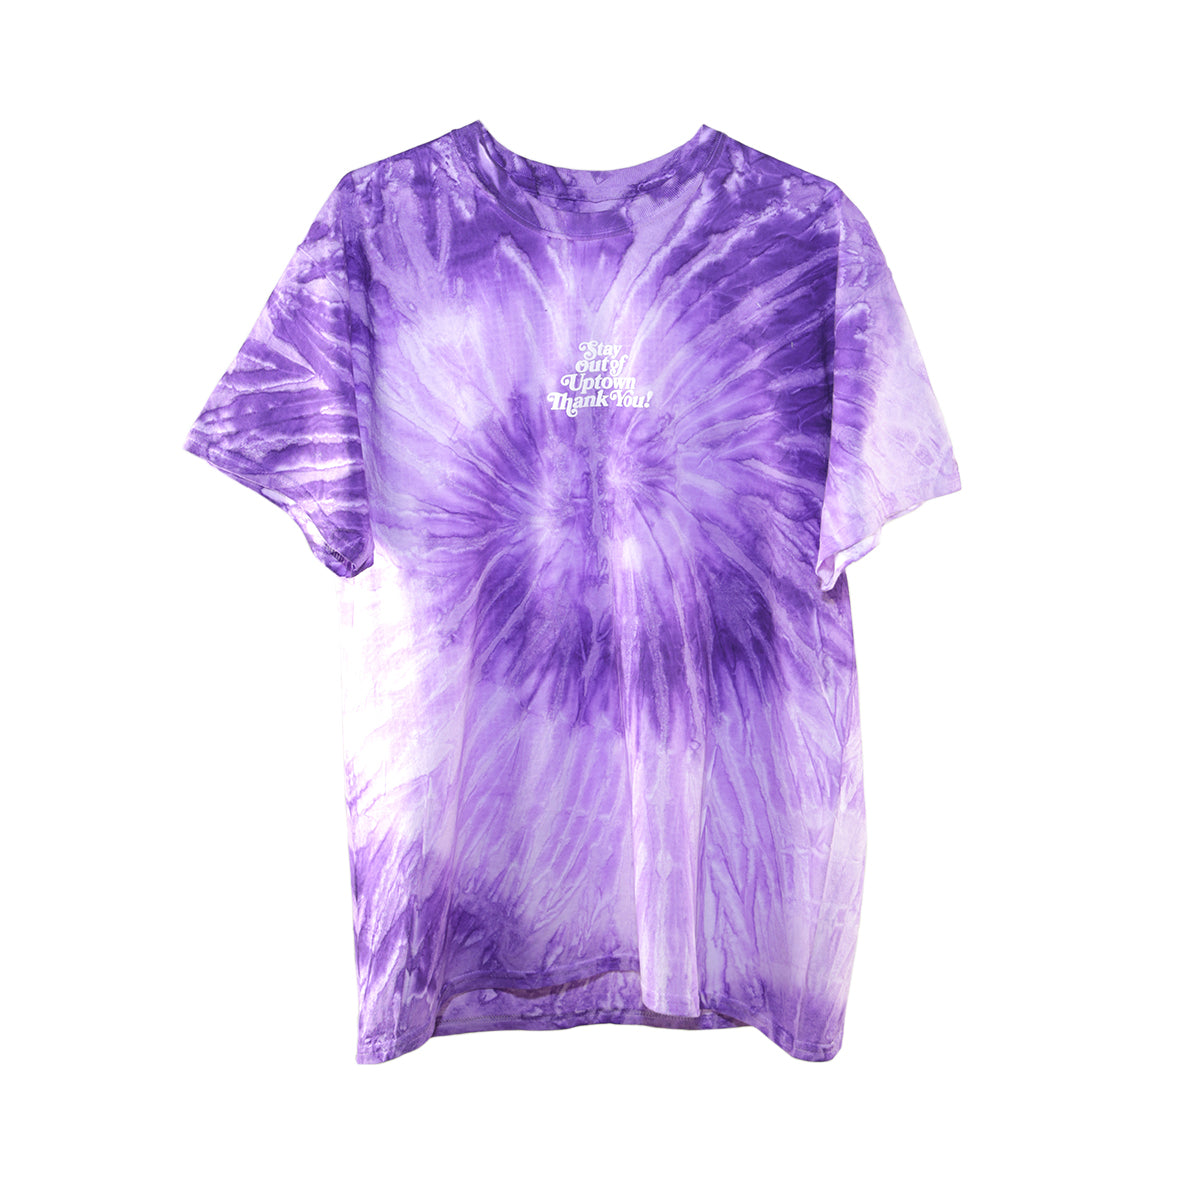 Stay Out of Uptown Tie Dye - Spiral Purple